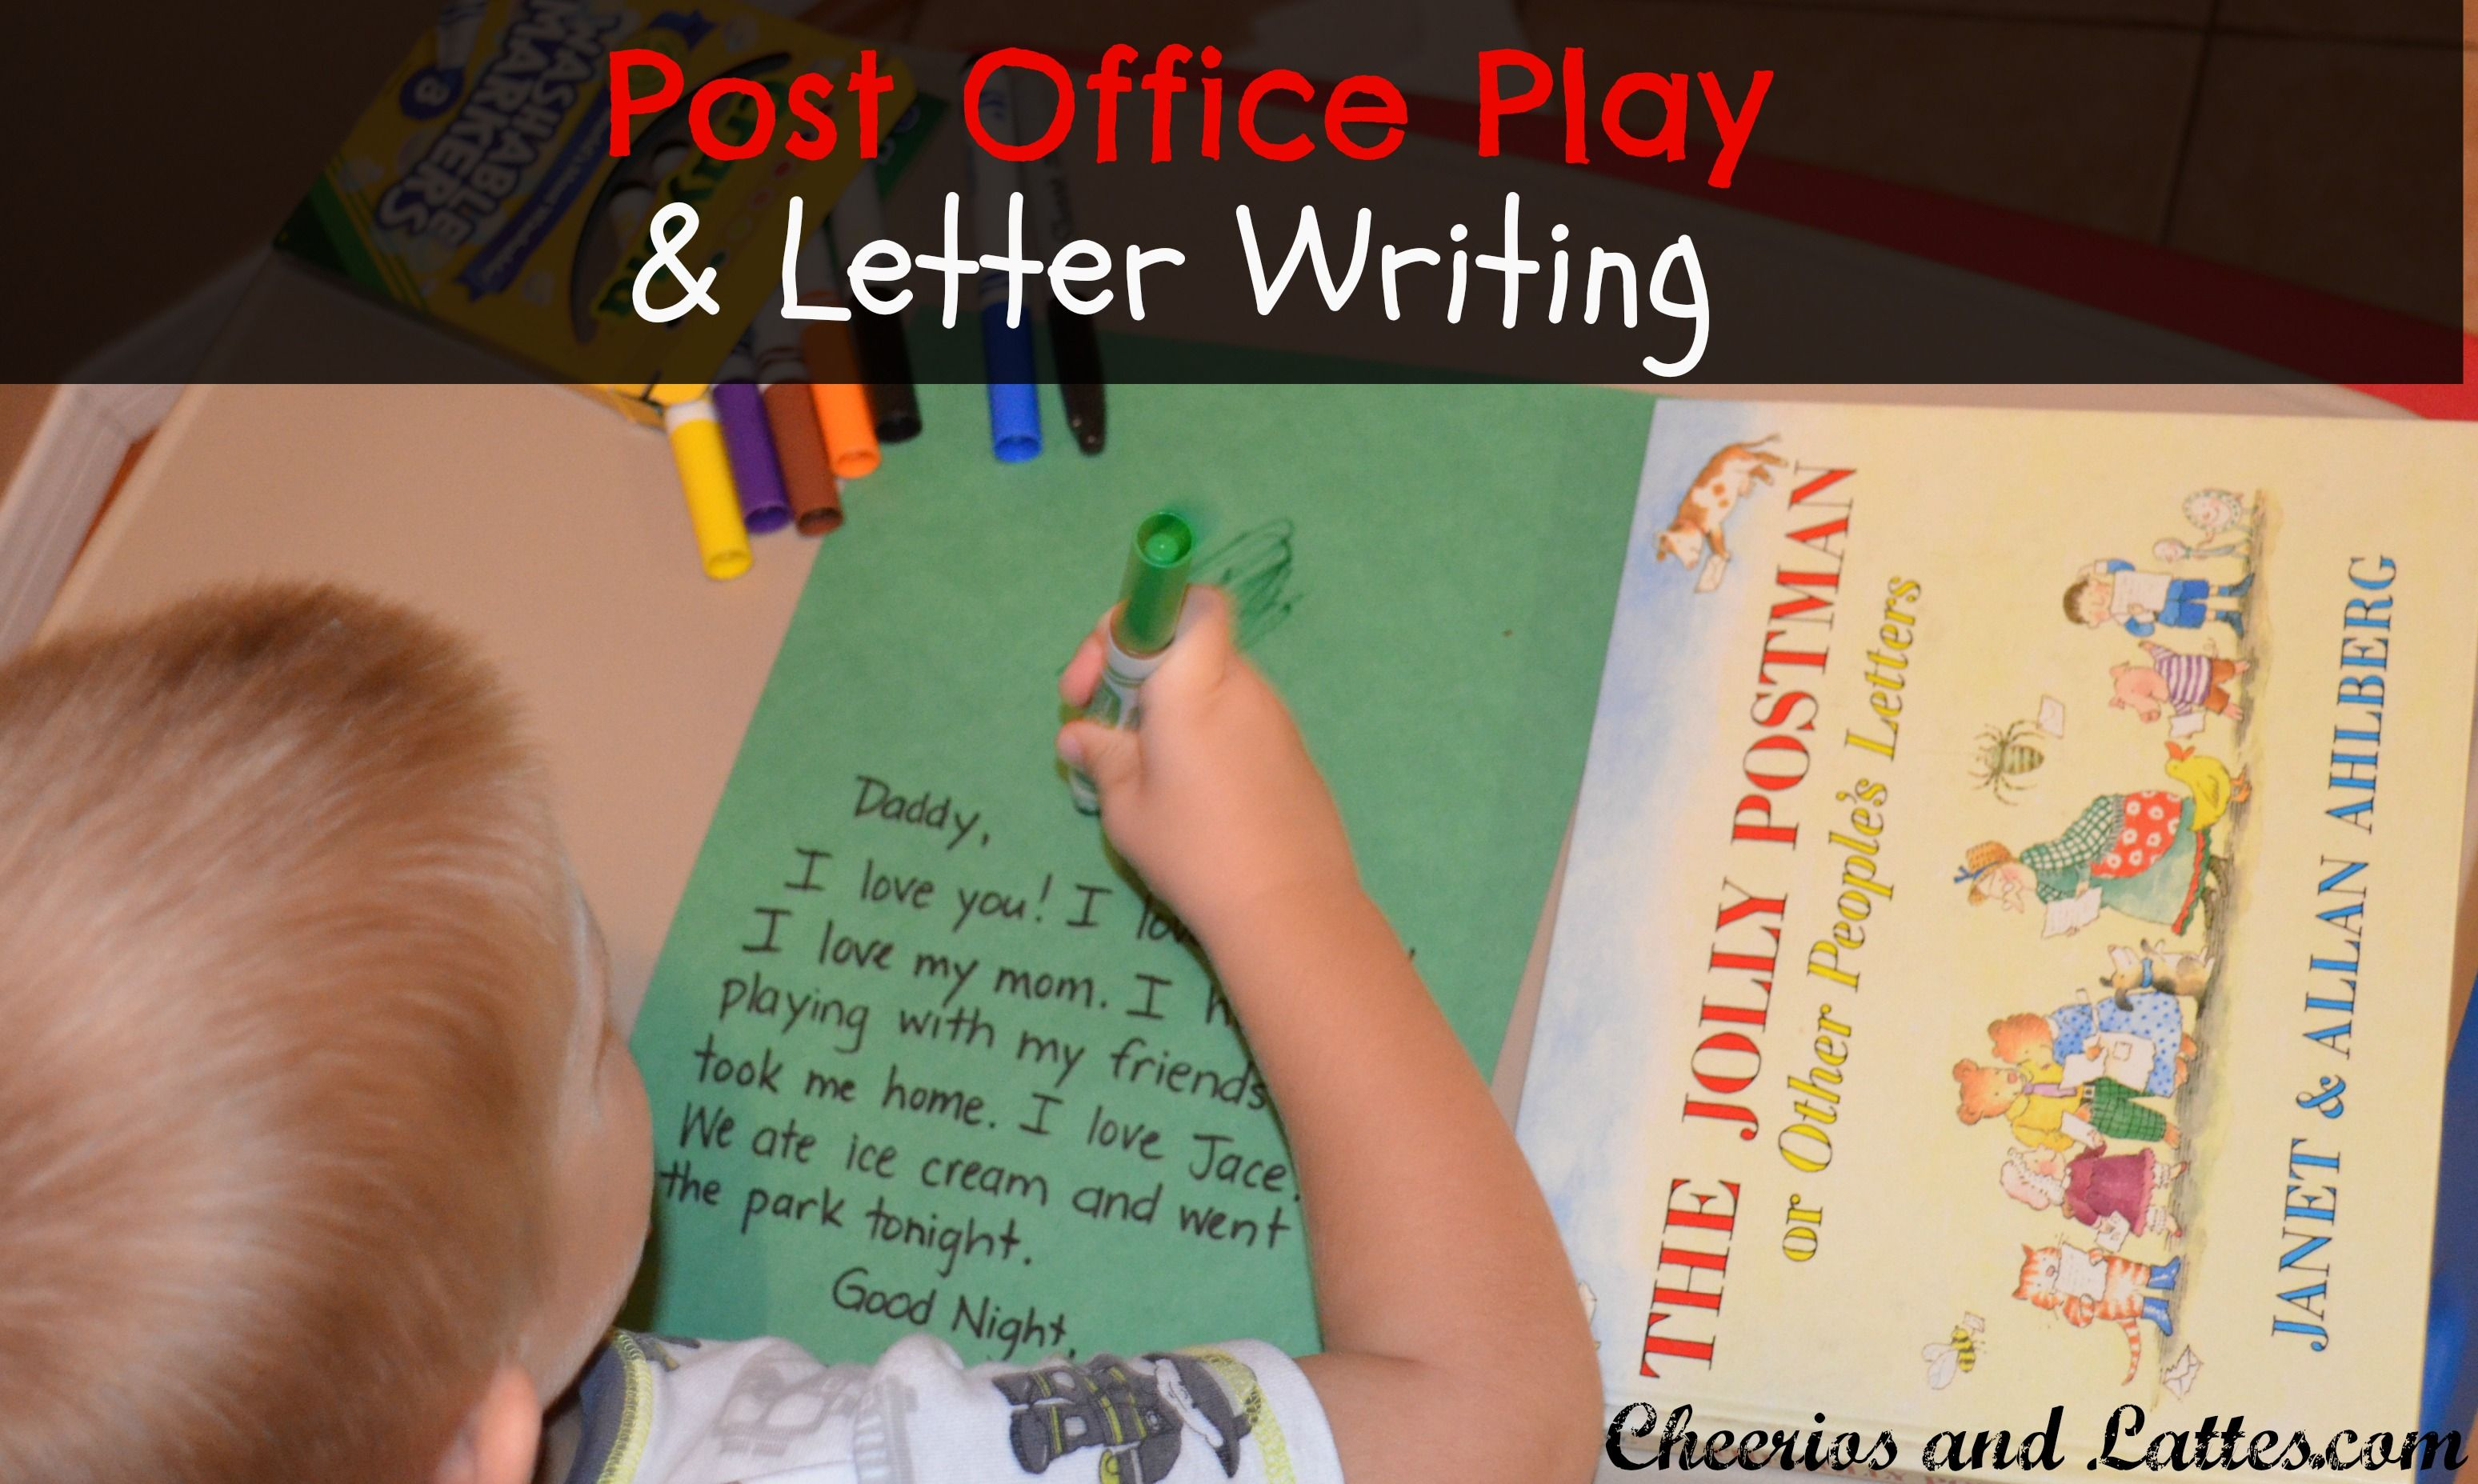 Post Office Play Plus Fun Letter Writing Ideas